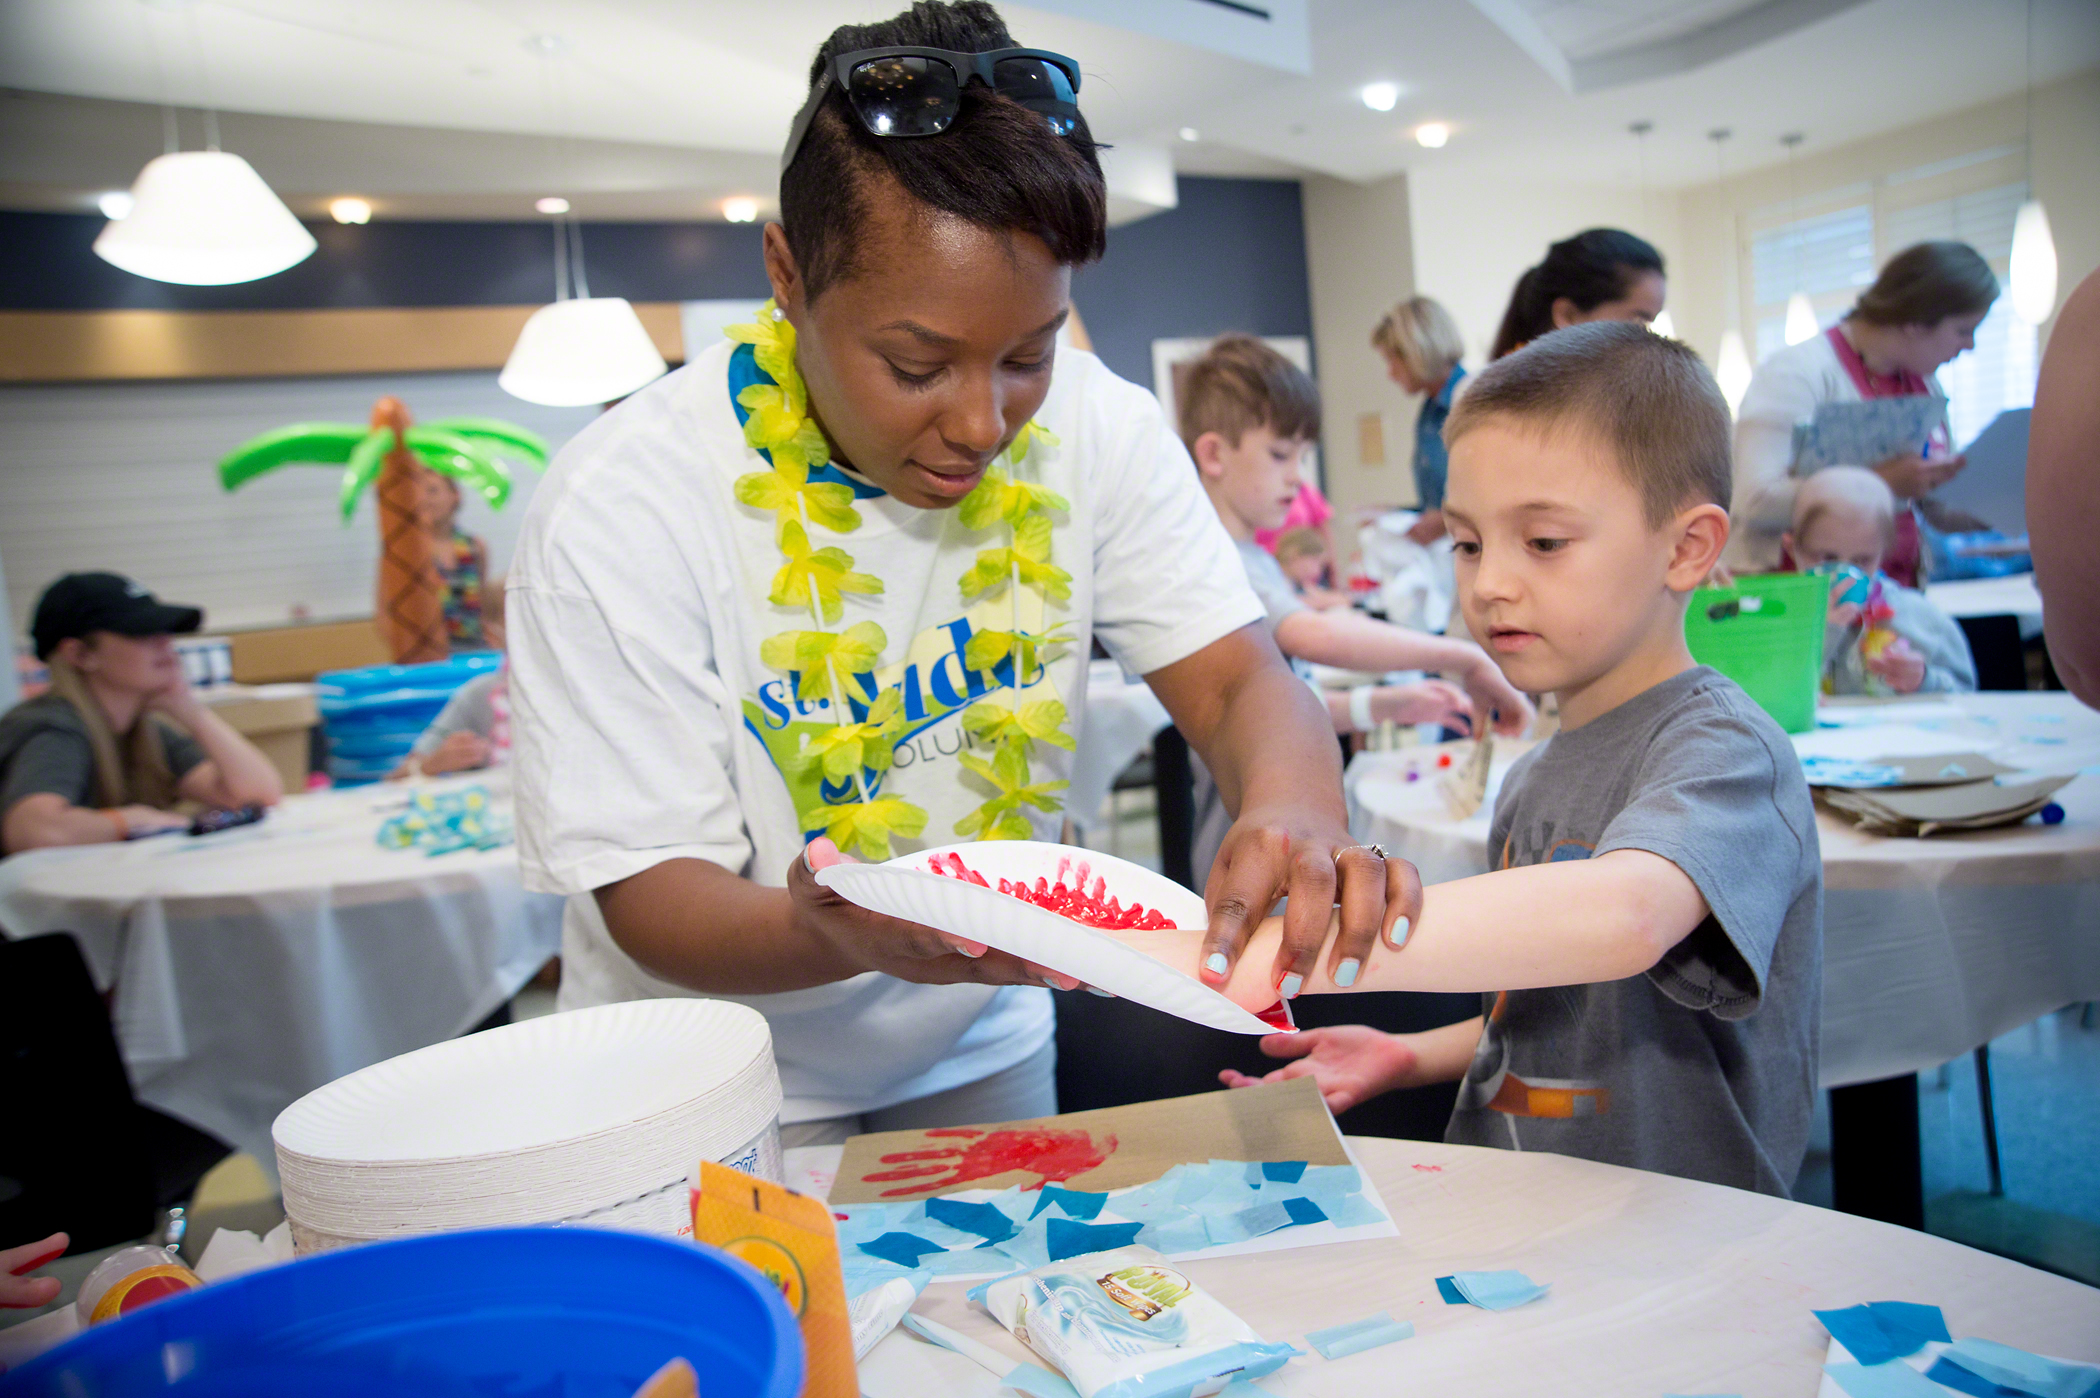 A Night of Carnival-Inspired Fun At St. Jude Children's Research Hospital's Target House